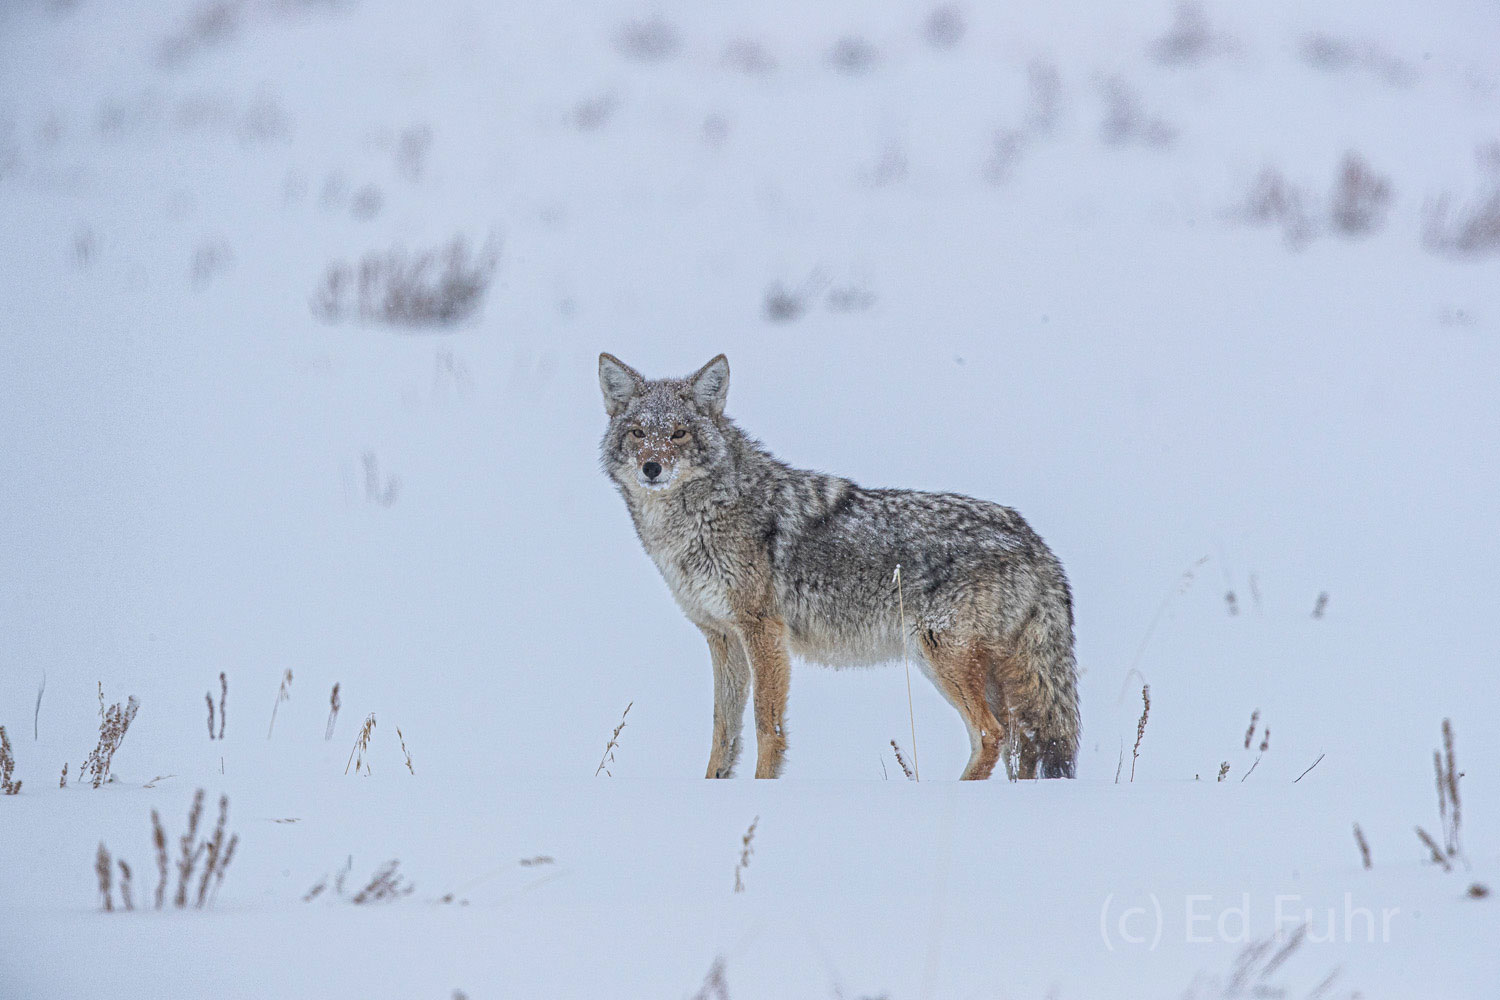 A coyote peers through the falling snow in search of food.